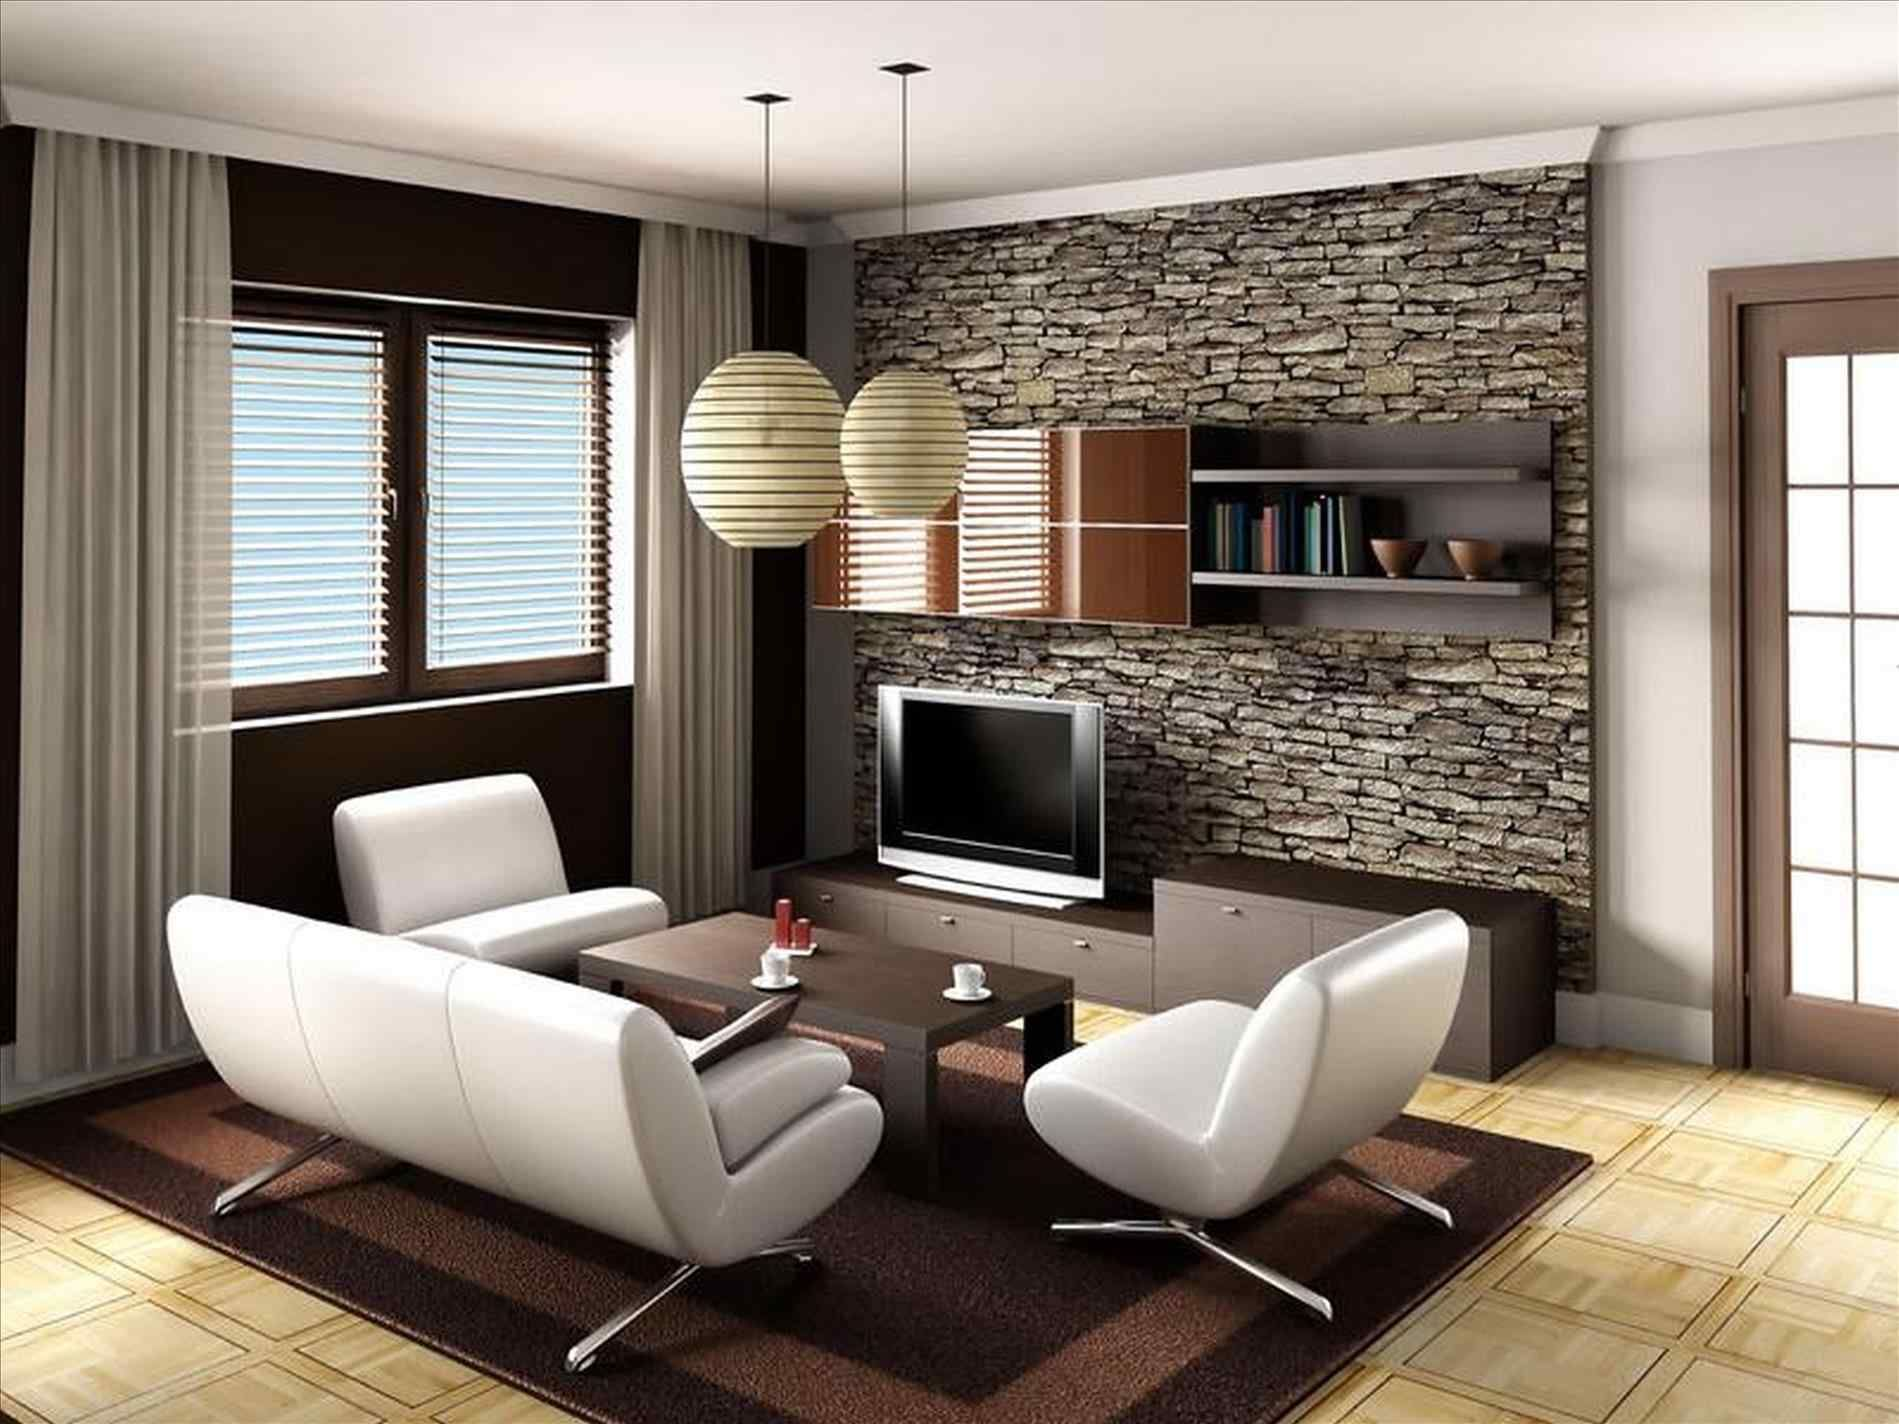 Home accessories comely design livingroom sofa innovation rooms hot great give a cozy atmosphere classic small cool contemporary style modern living rooms